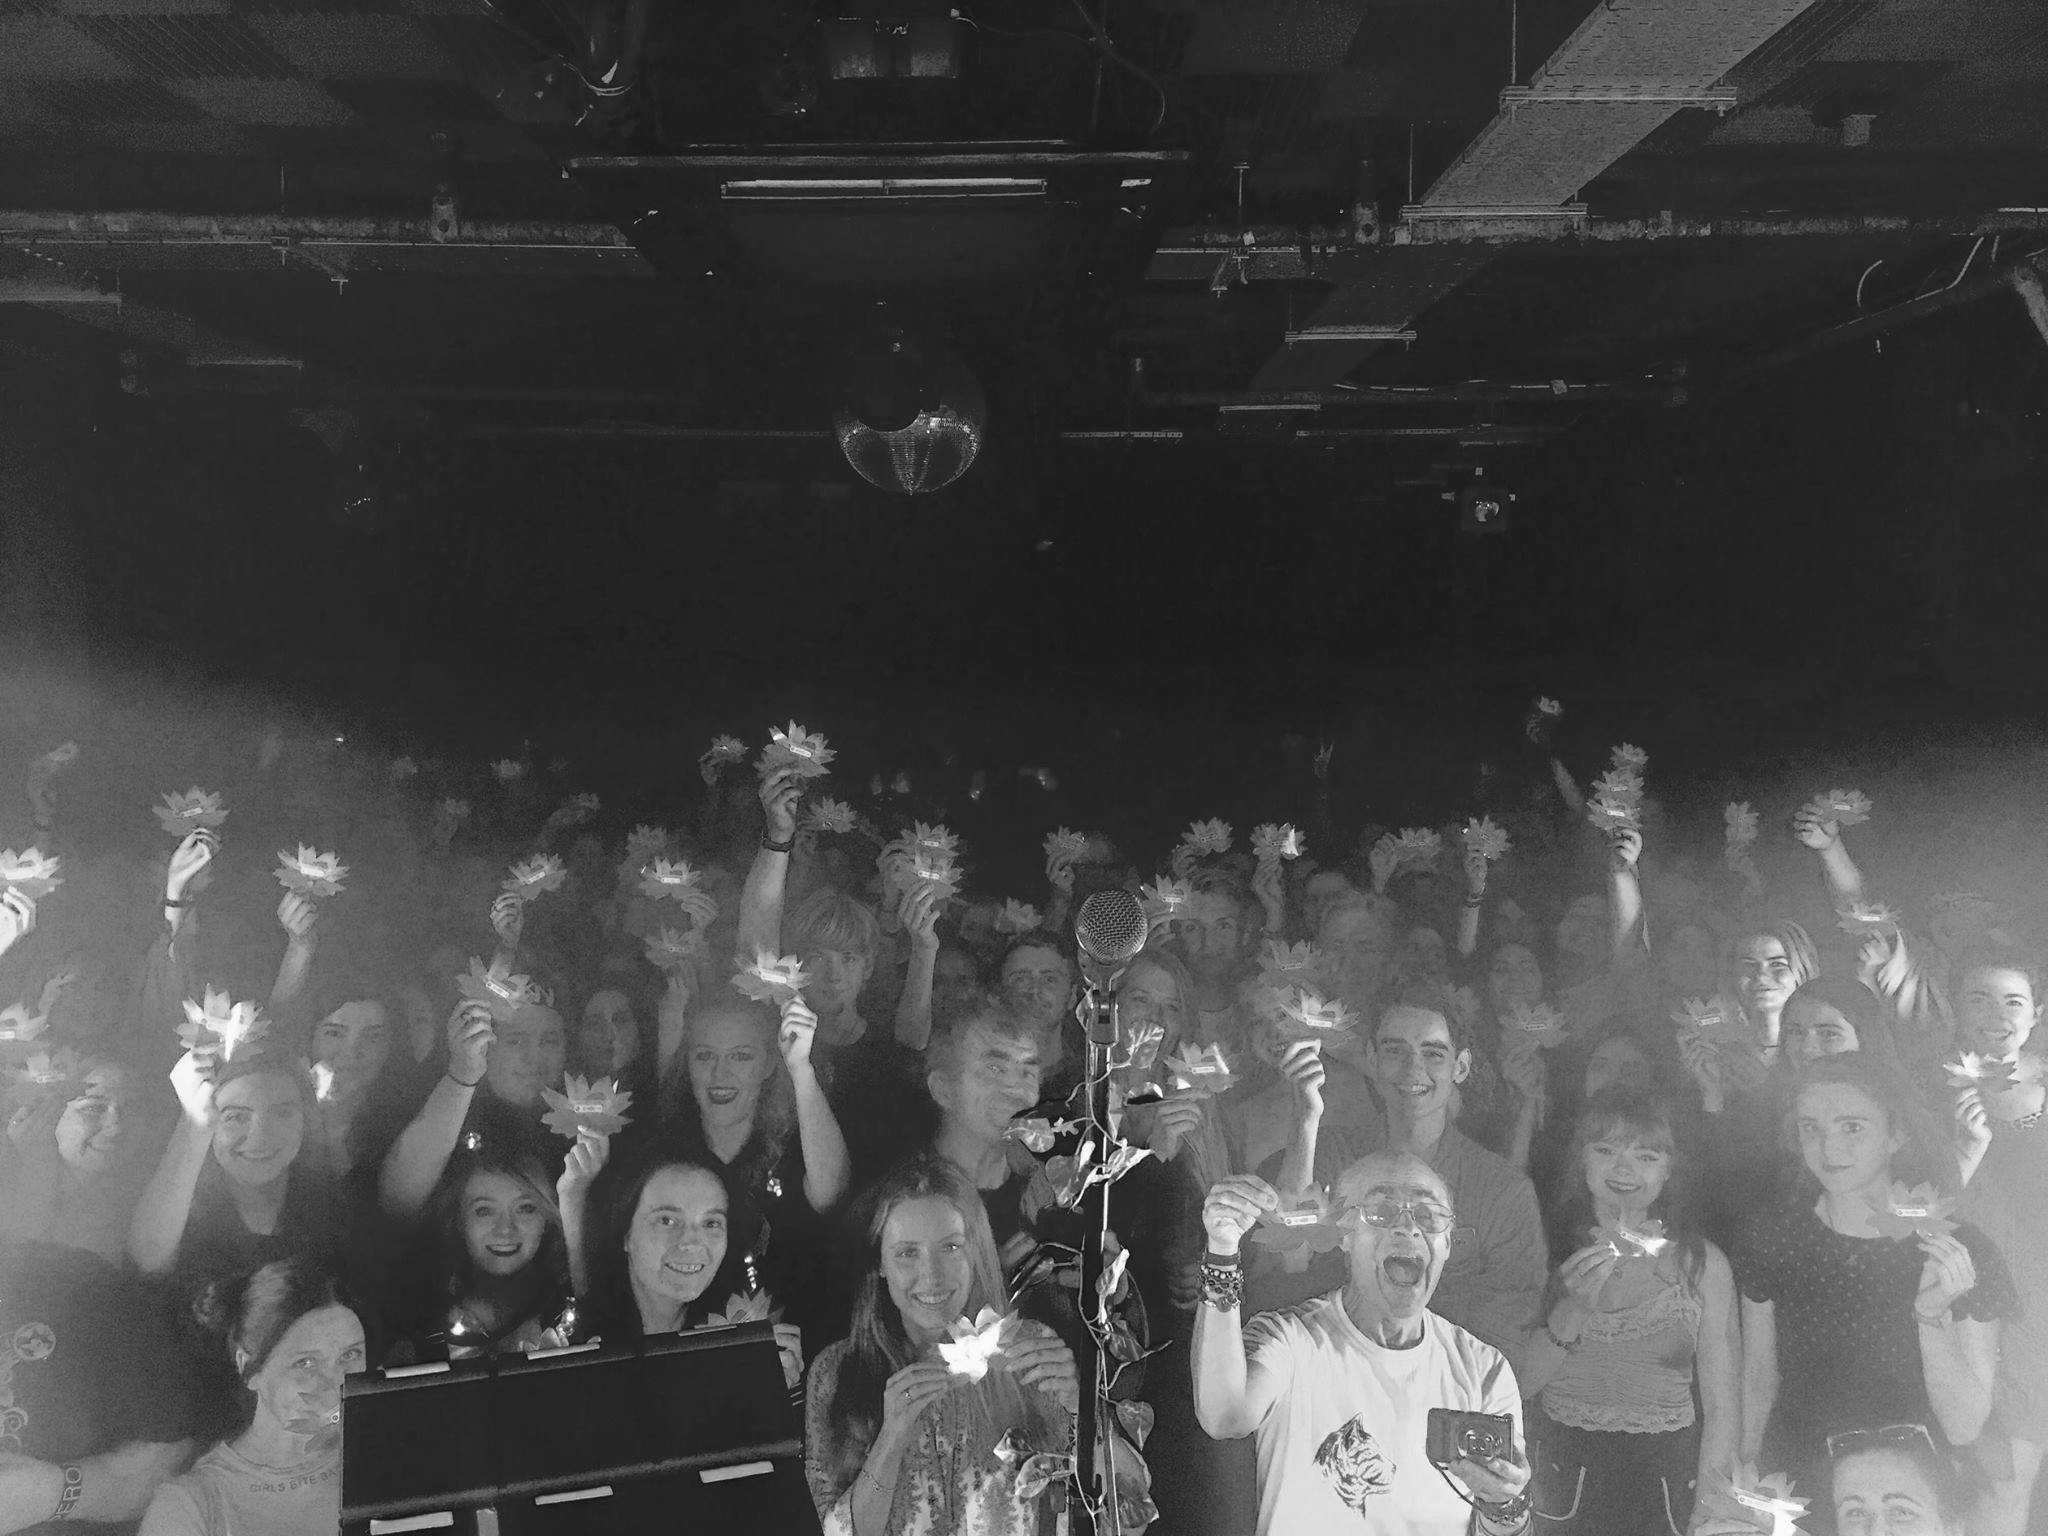 Crowd at a Nina Nesbitt show, holding up stickers featuring Spotify Codes.